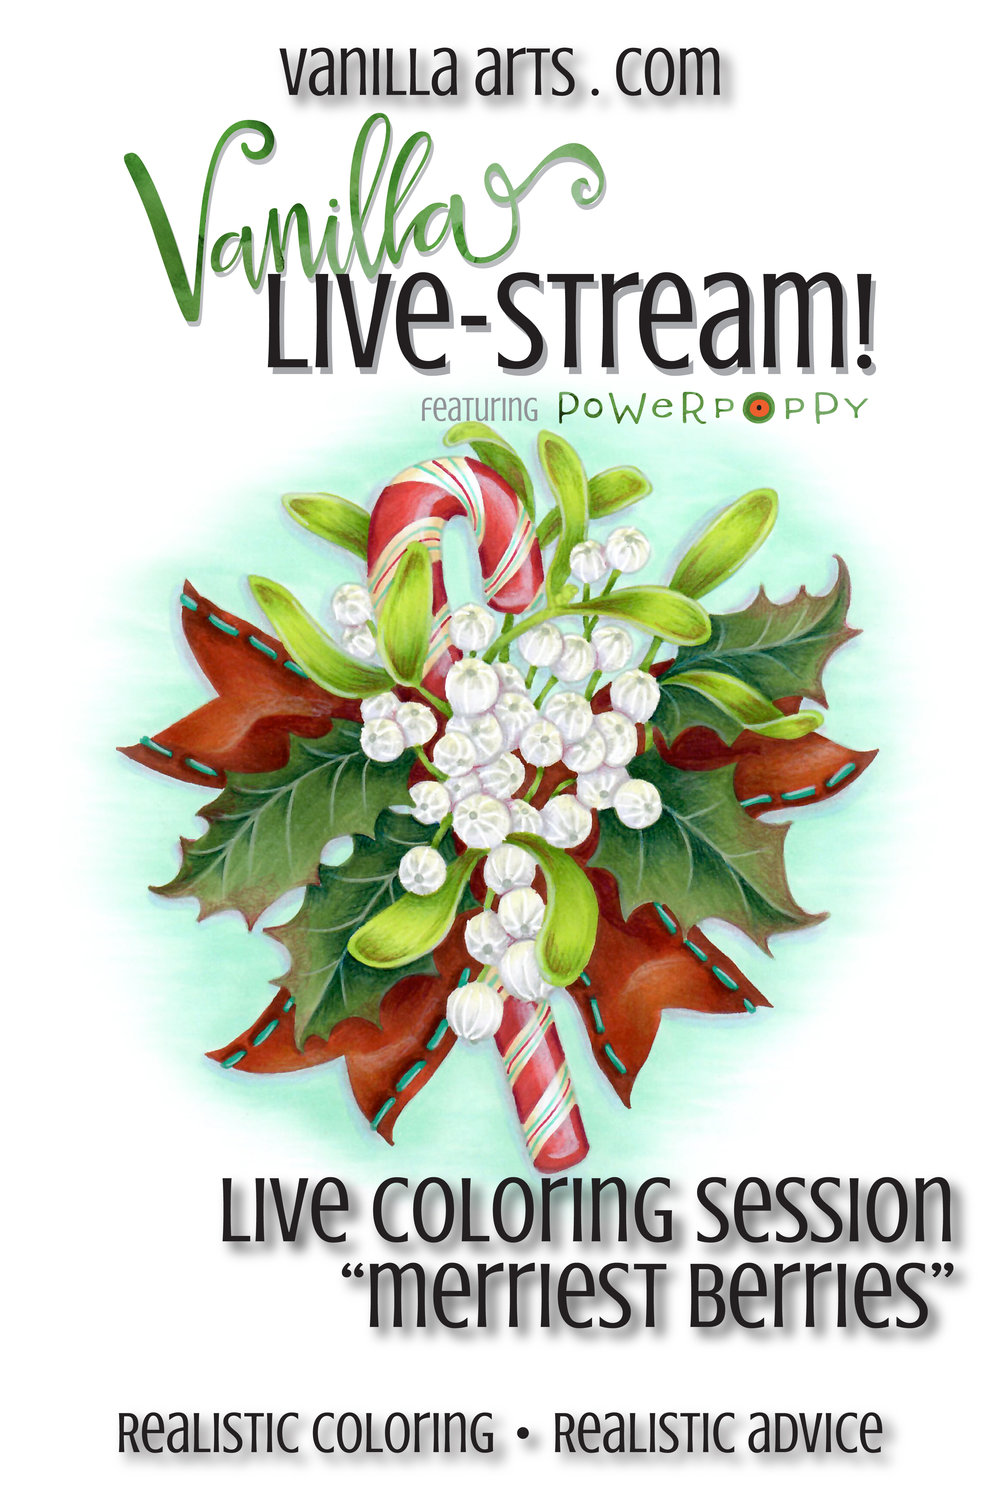 Join Amy for online live coloring broadcasts. All the fun of her live & local classes but now online. Every month, a new Power Poppy challenge.  VanillaArts.com